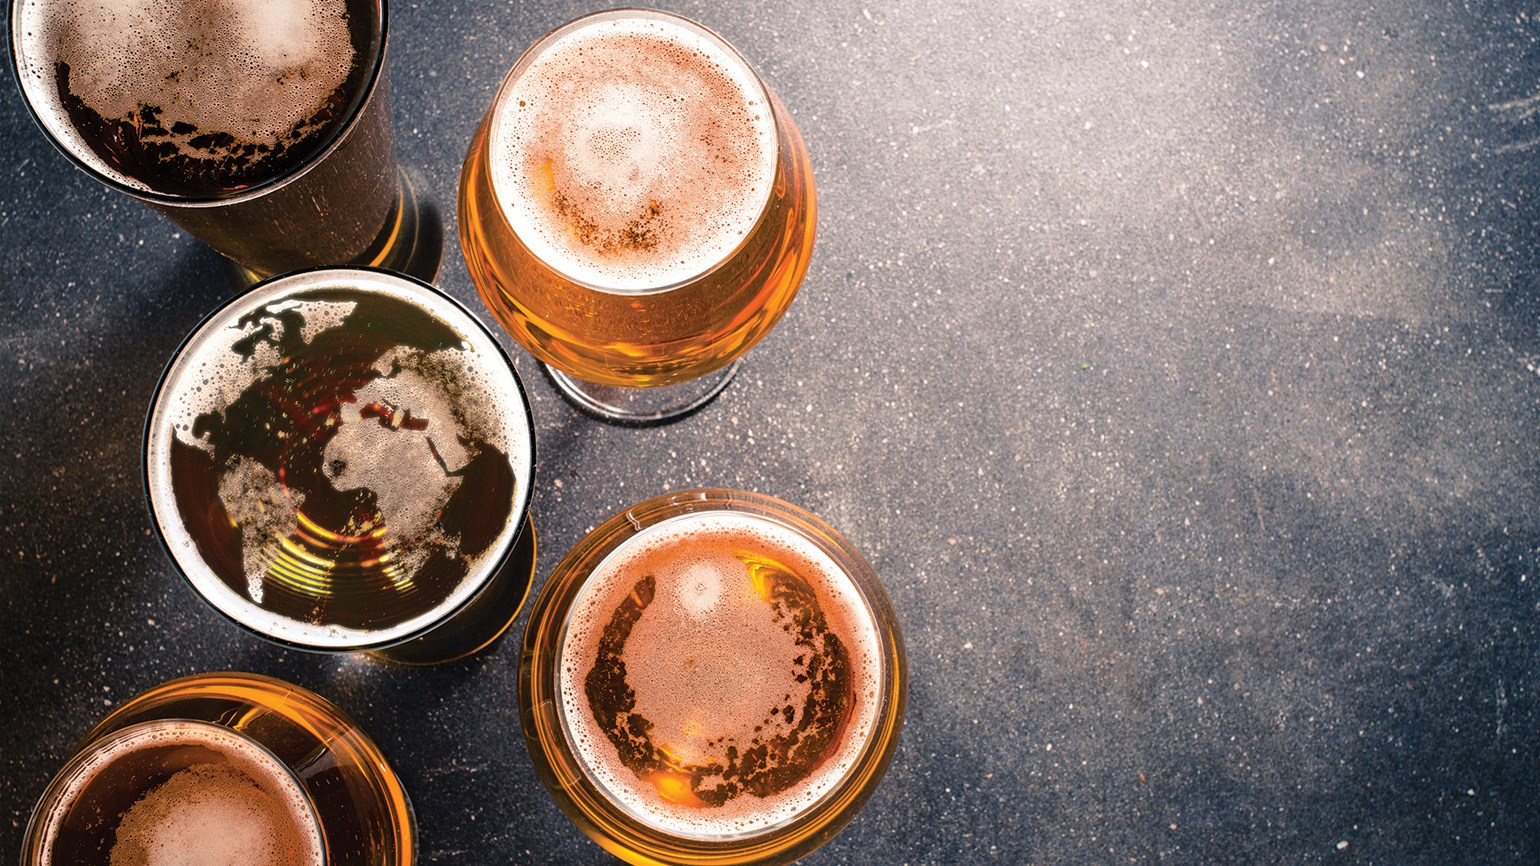 Tourism on tap: Beer-related travel: Travel Weekly